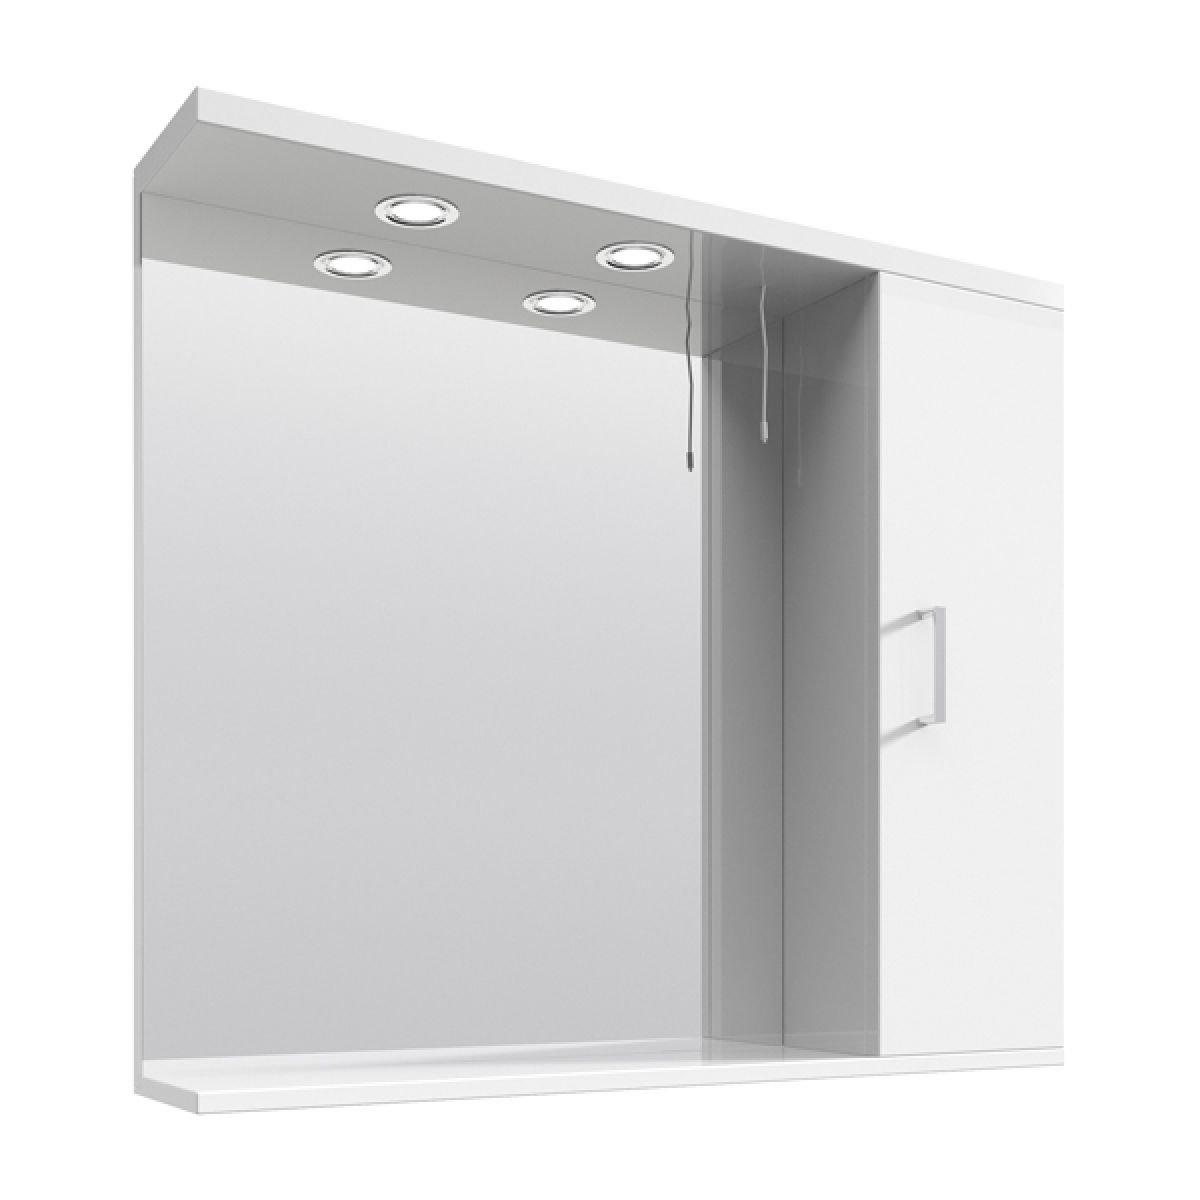 Premier High Gloss White Bathroom Mirror Cabinet with Lights 850mm